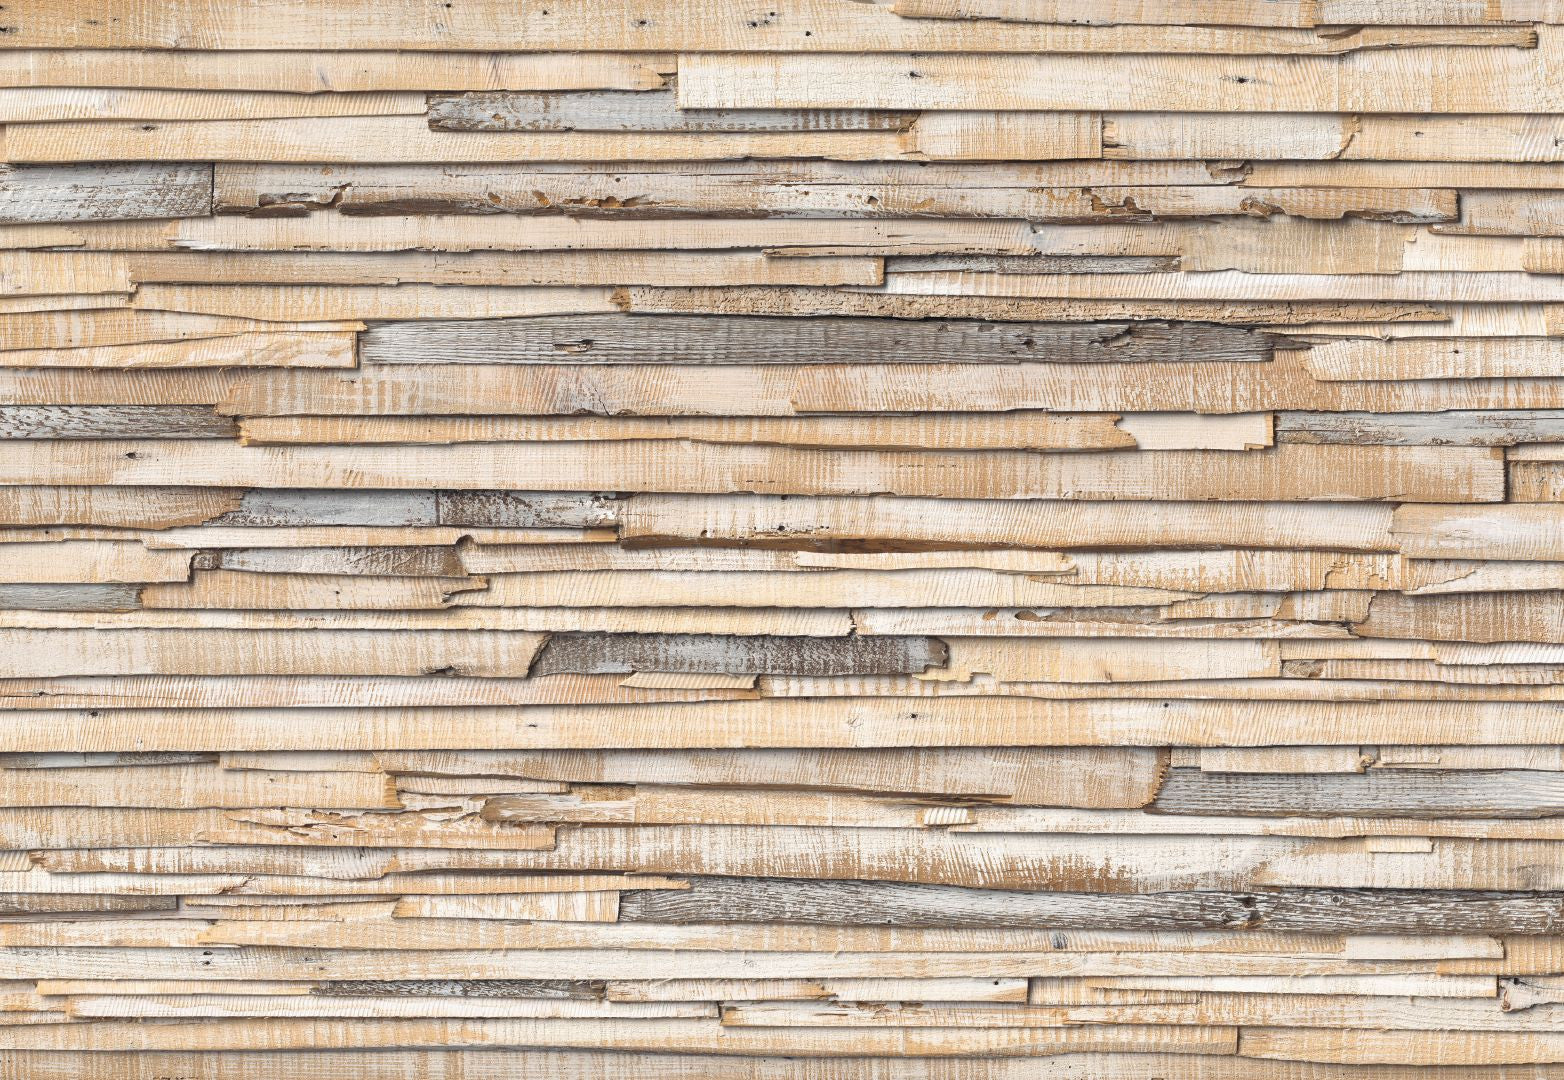 Whitewashed Wood Wall Mural Design By Komar For Brewster Home Fashions Part 33